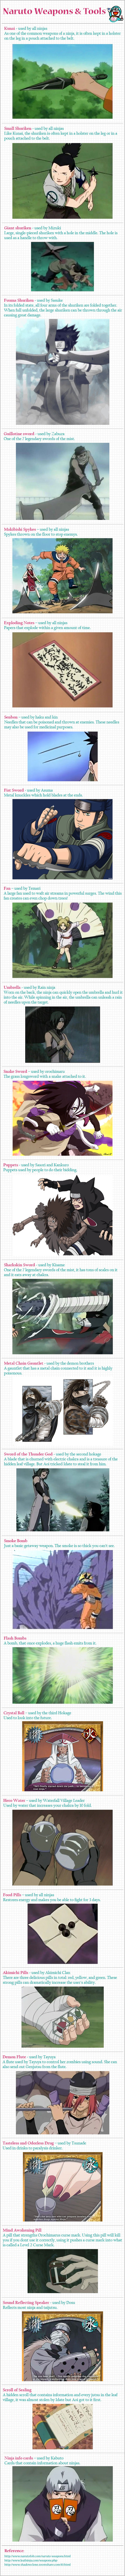 naruto weapons [Infographic]